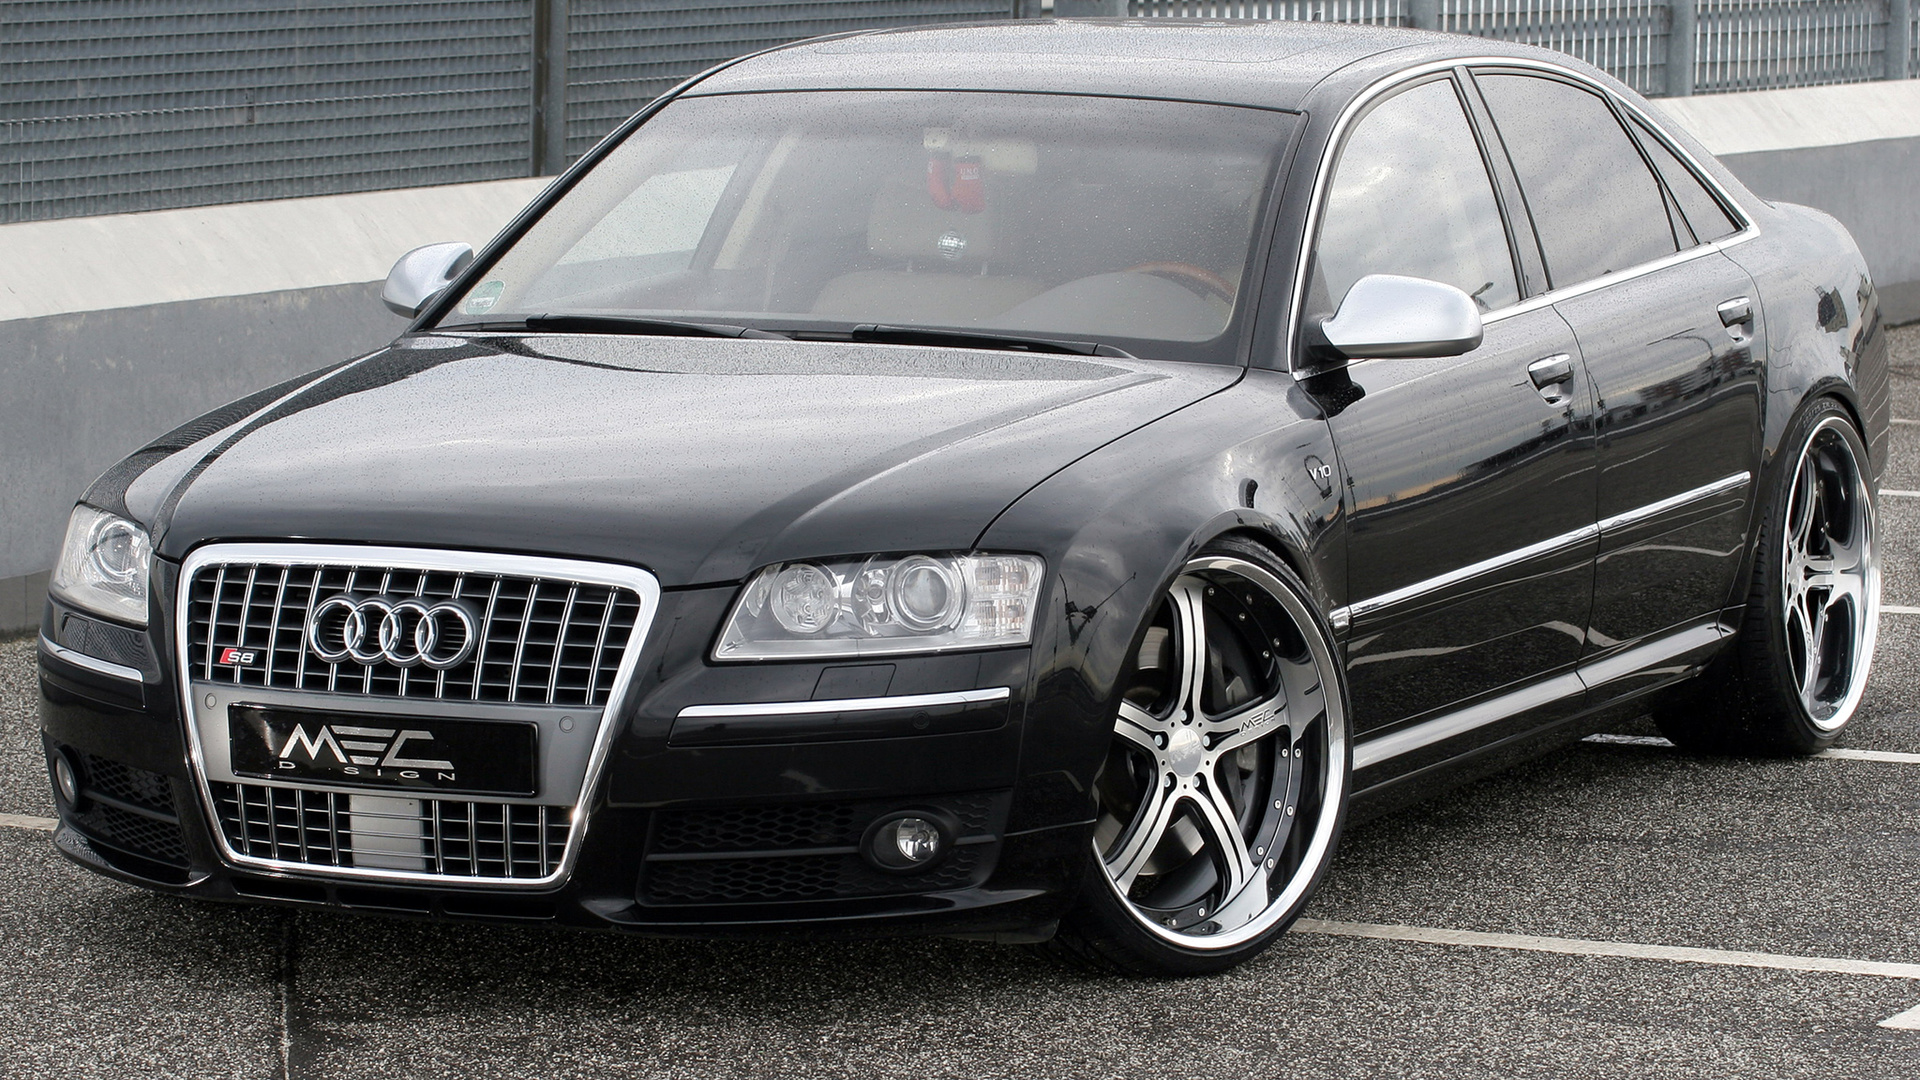 Download Wallpaper Audi S8 Tuning 1920x1080 The